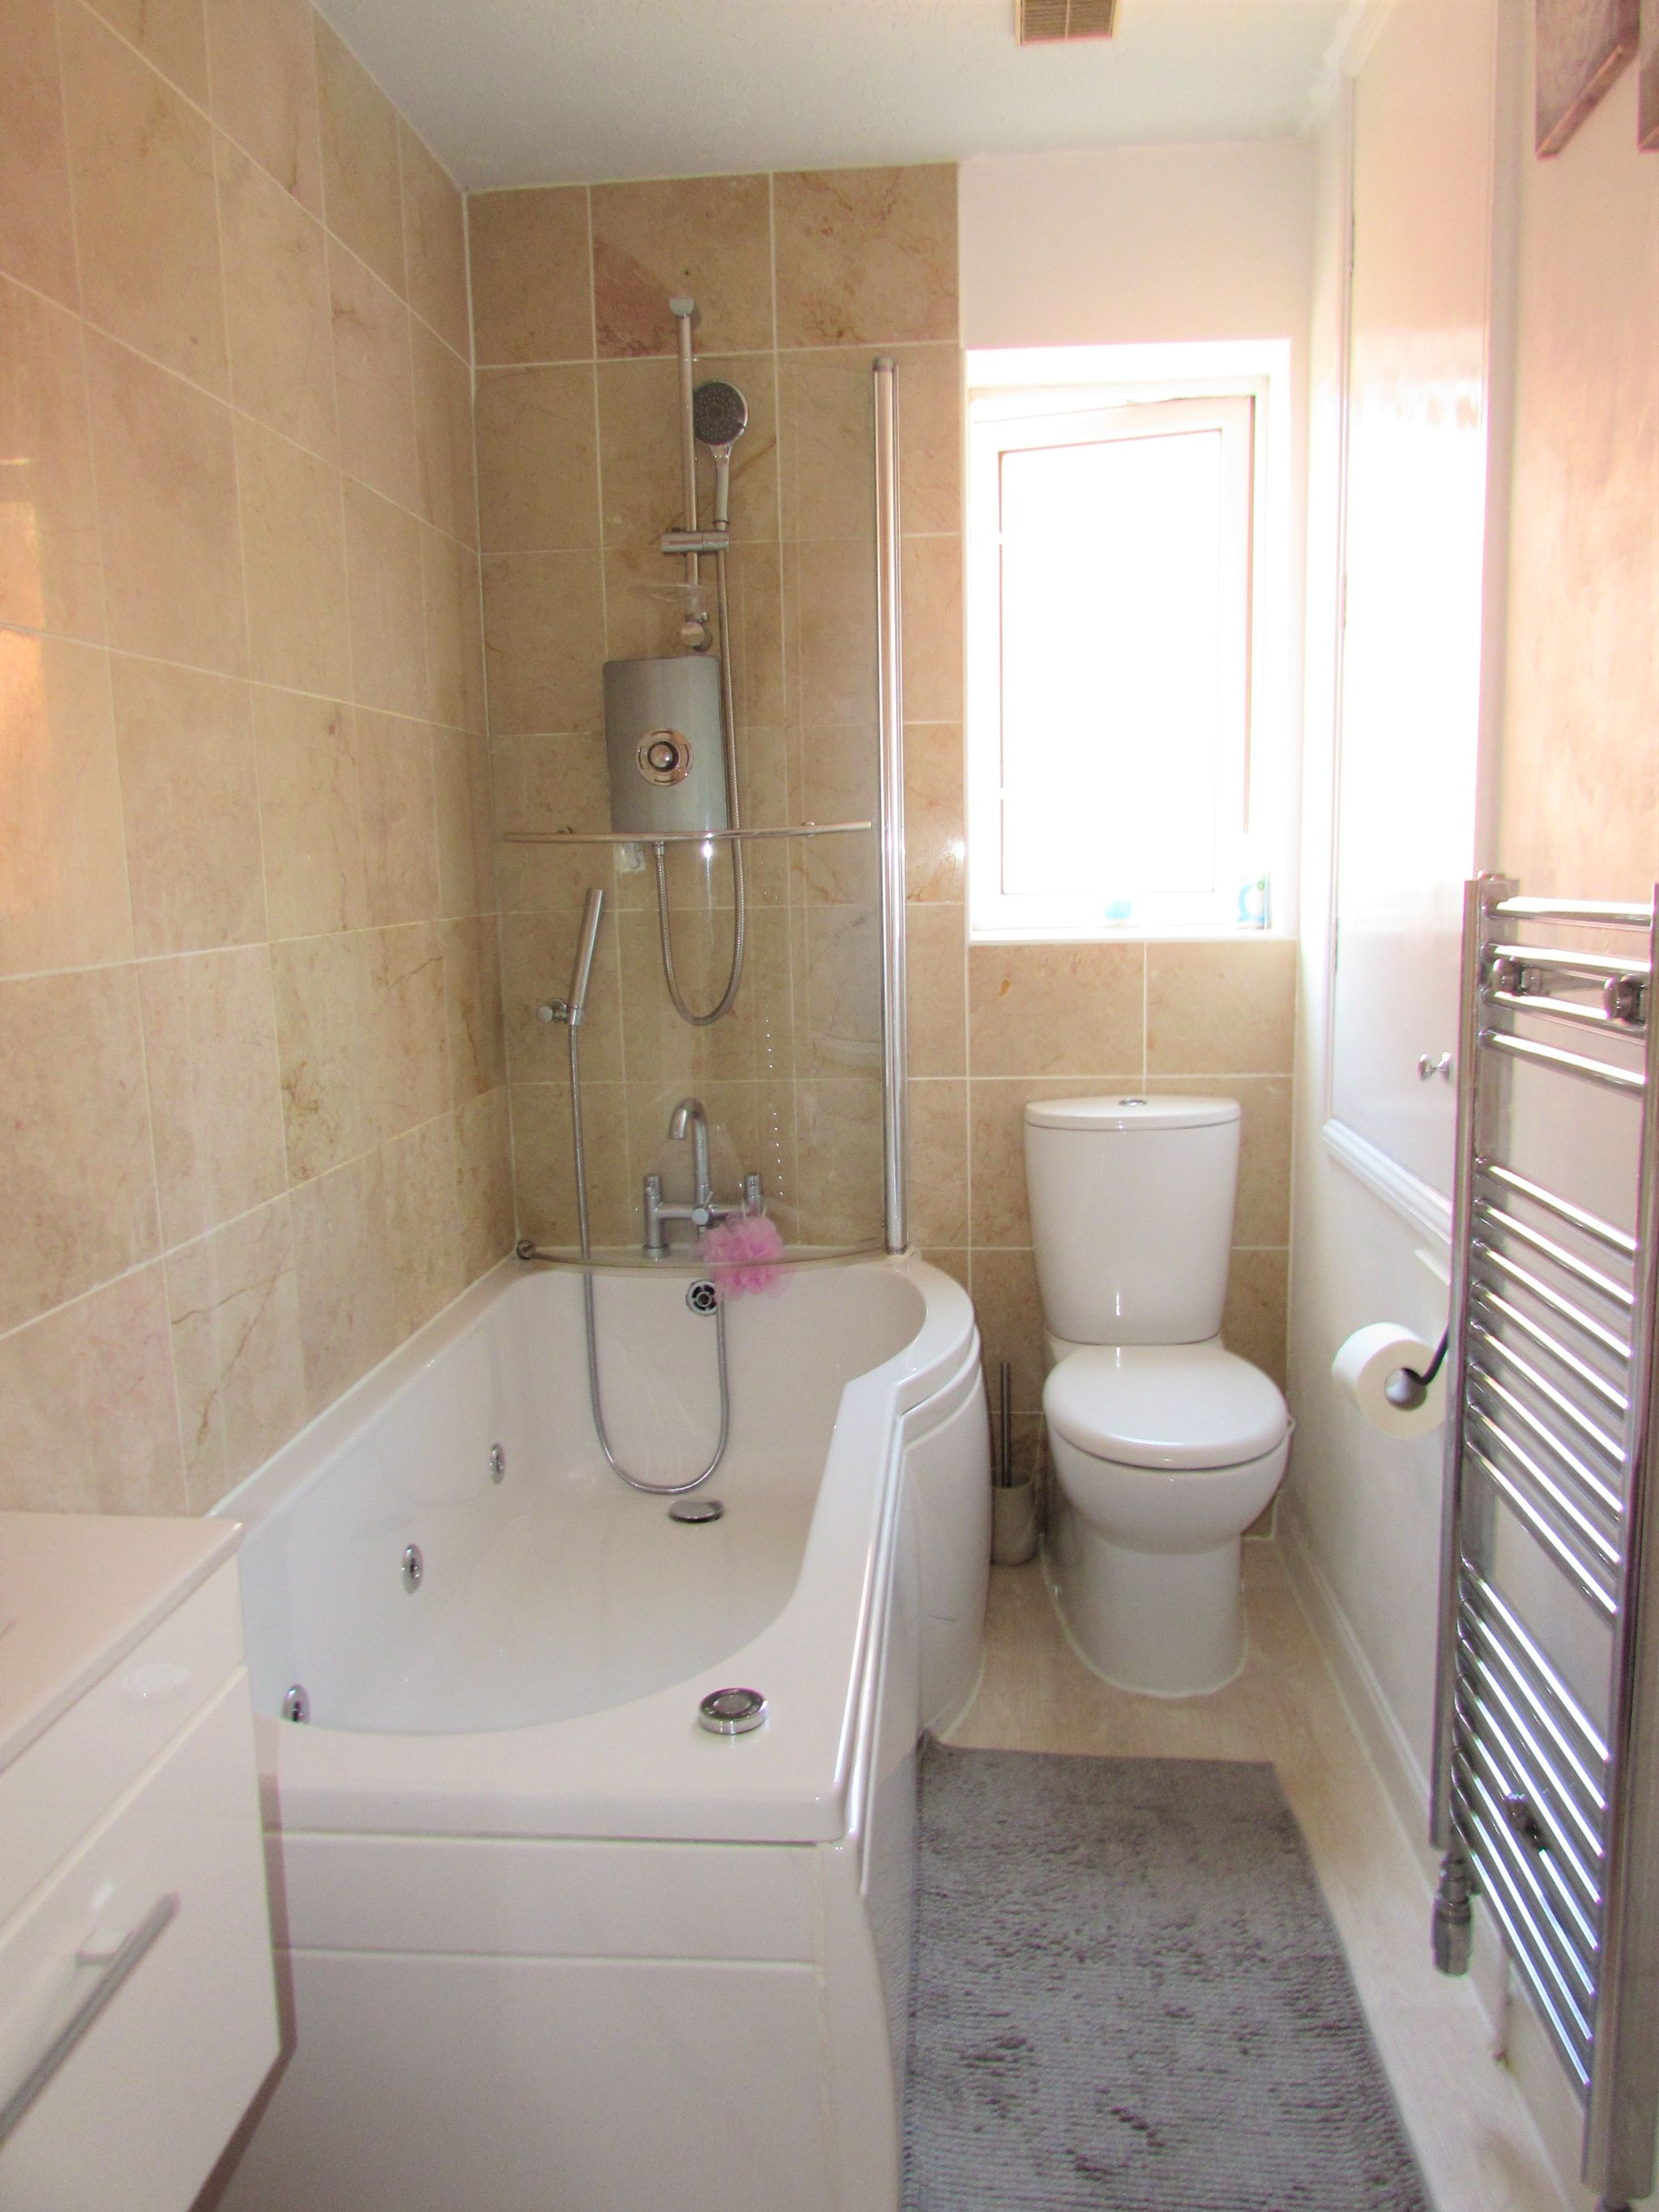 2 Bedroom Semi-detached House For Sale - Family Bathroom